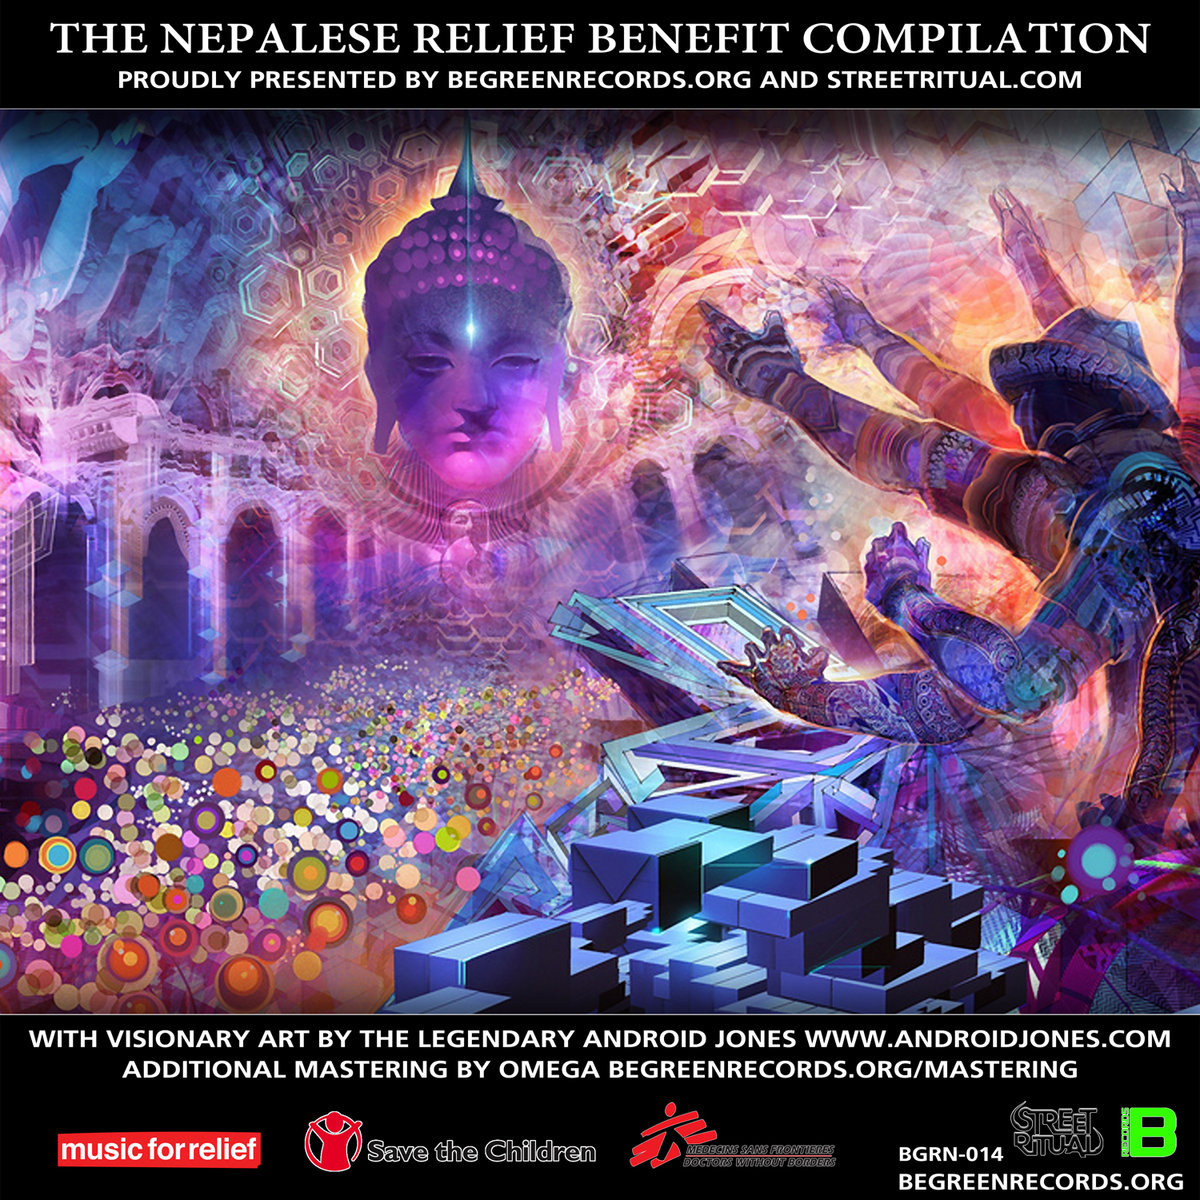 Ocean - Emerge @ 'Various Artists - The Nepalese Relief Benefit Compilation' album (bass, electronic)